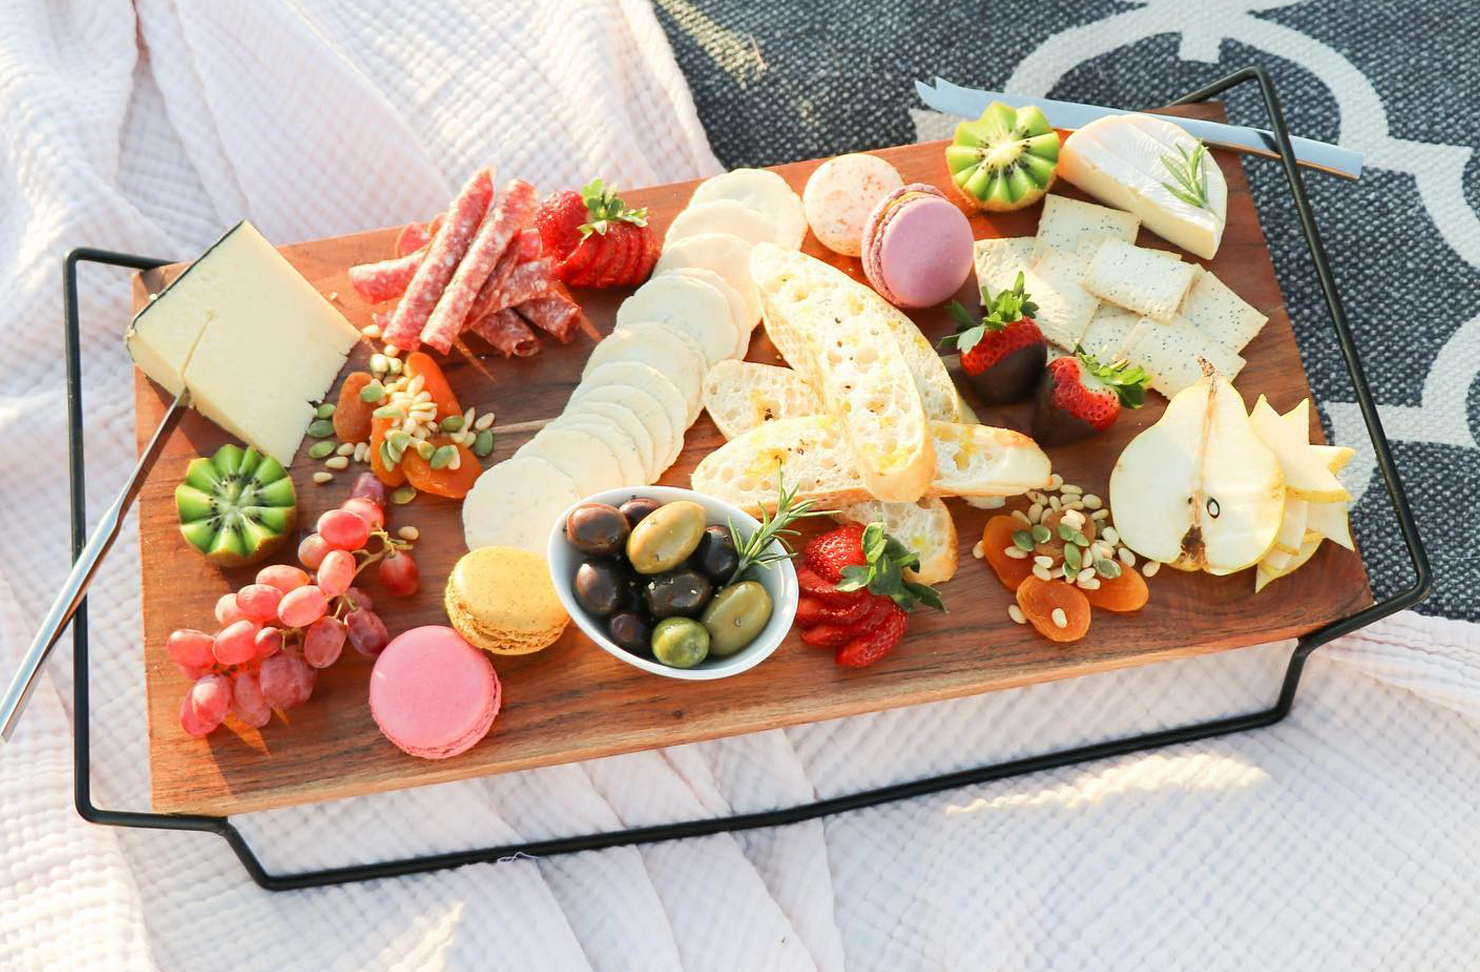 A picnic spread on a blanket, including cheeses, fruit, crackers, meats and nuts.